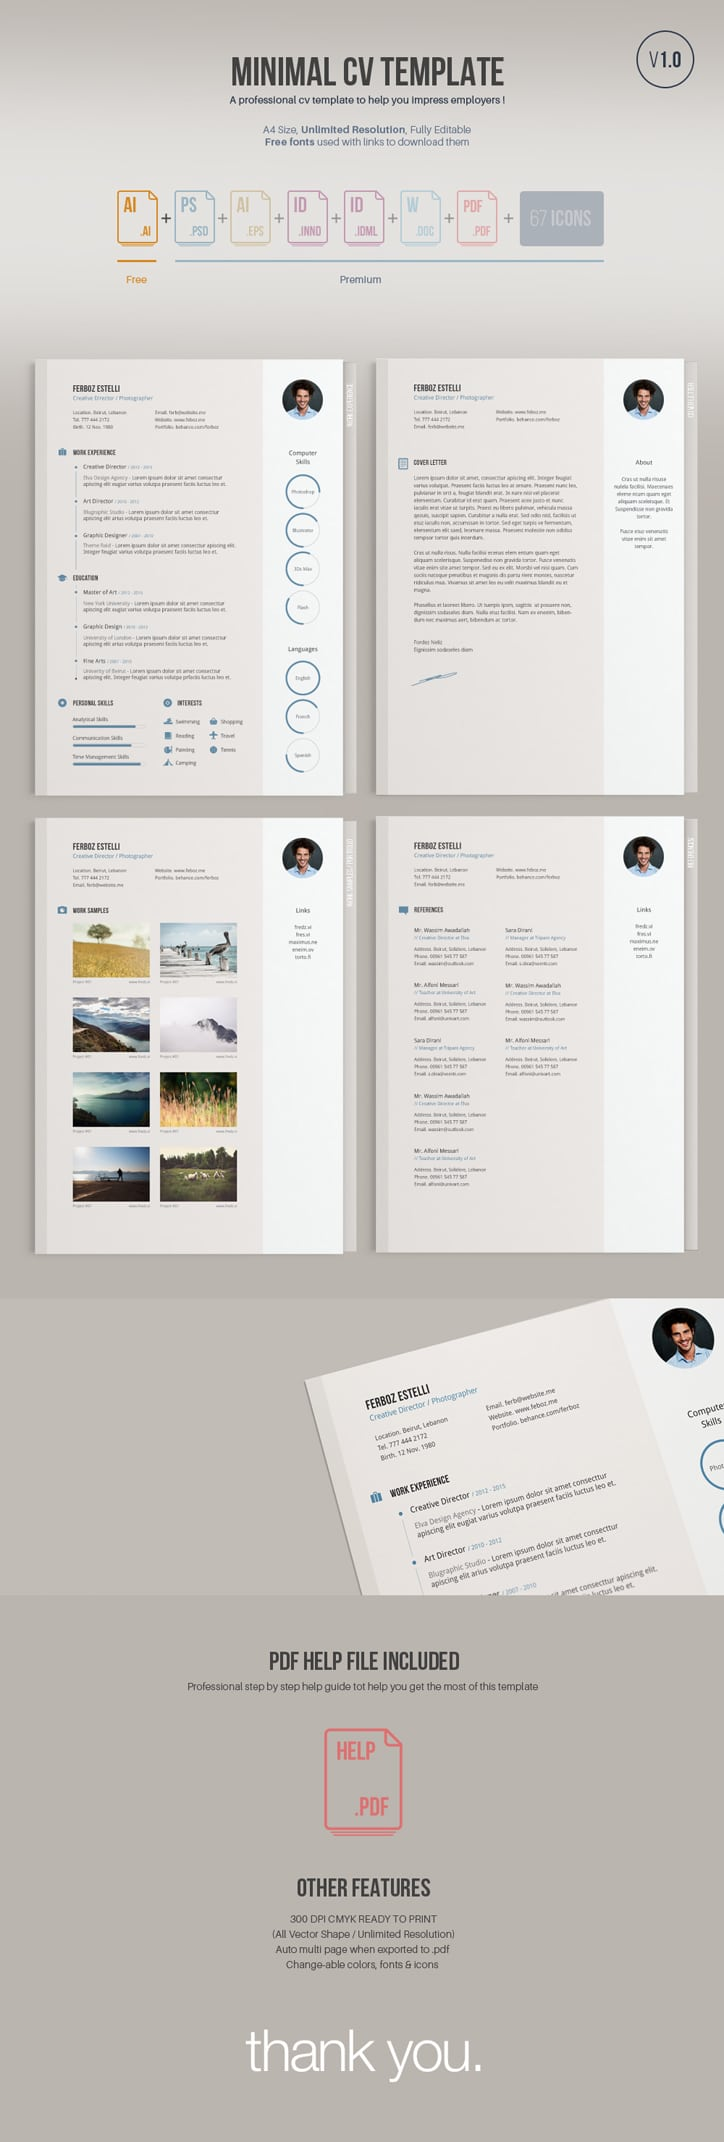 55 amazing graphic design resume templates to win jobs. Black Bedroom Furniture Sets. Home Design Ideas